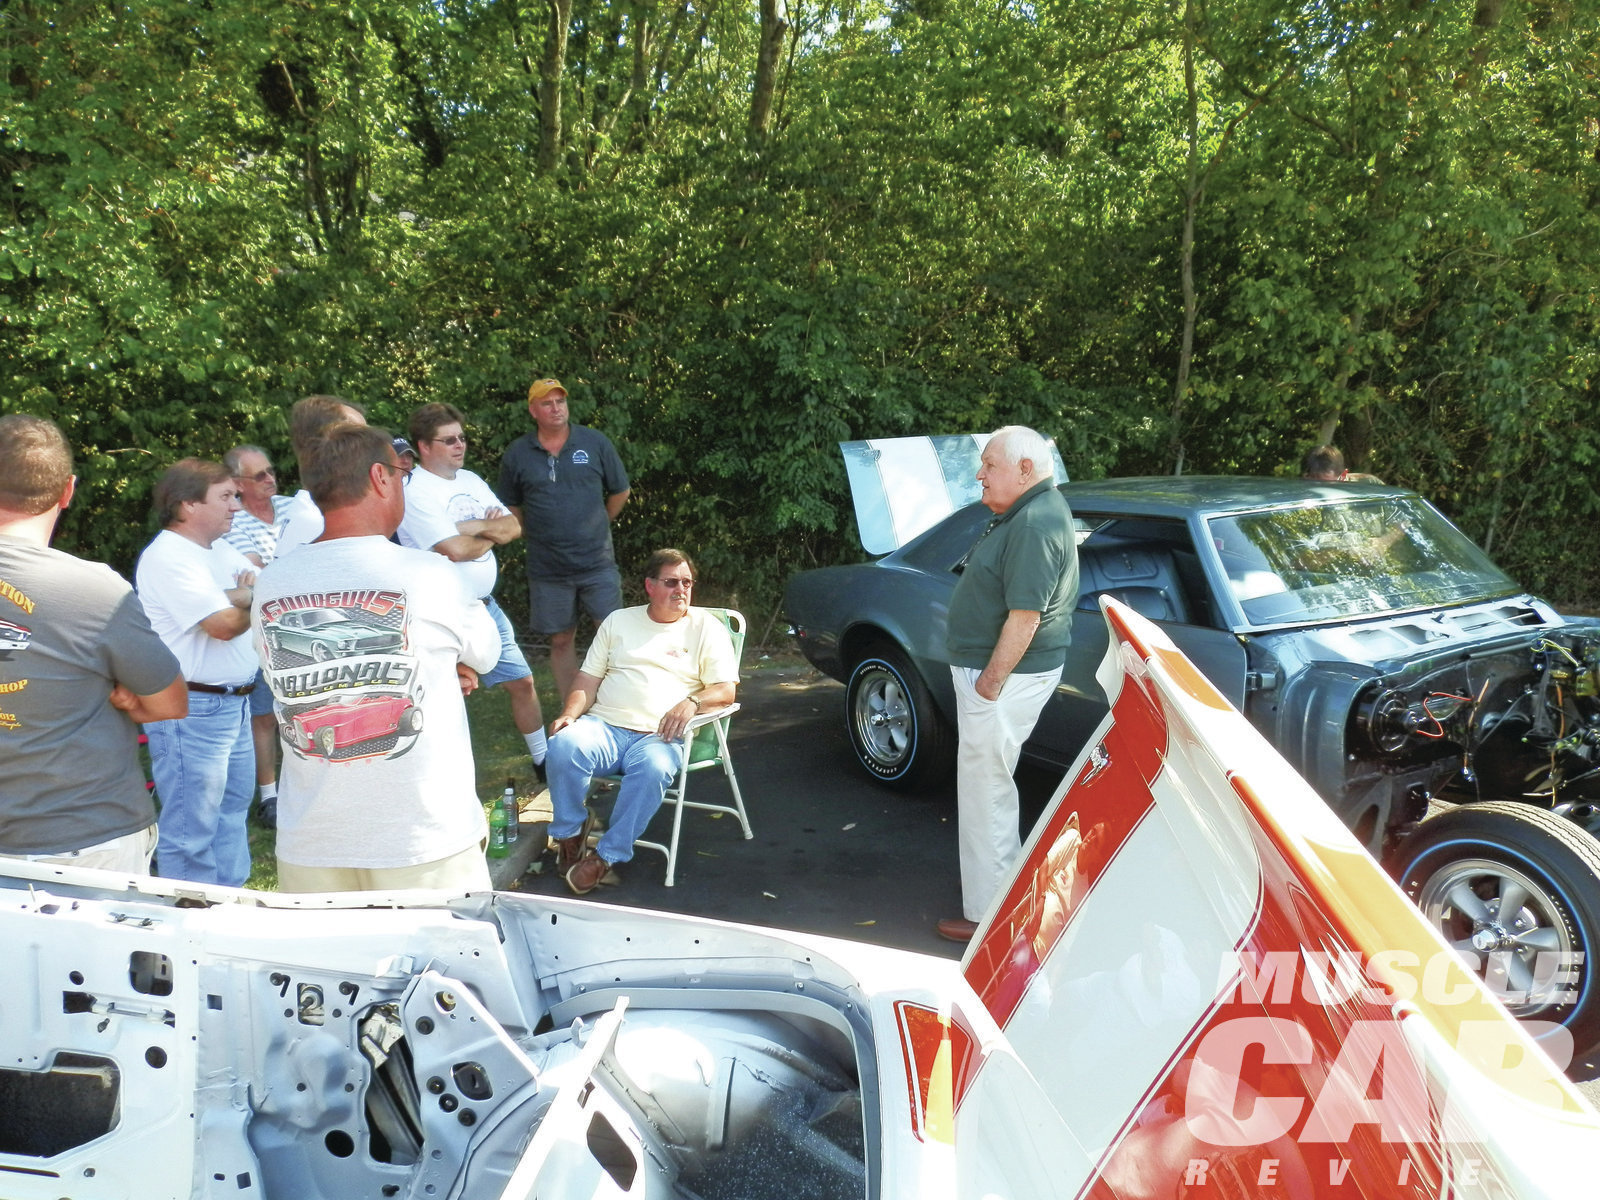 Norwood retiree Jim Seim (below) talks about assembling Camaros at the plant's reunion. The Super Car Workshop had a couple of in-process restoration projects at the Norwood reunion, including this '68 Z/28 (behind Jim) originally sold through Yenko Chevrolet.